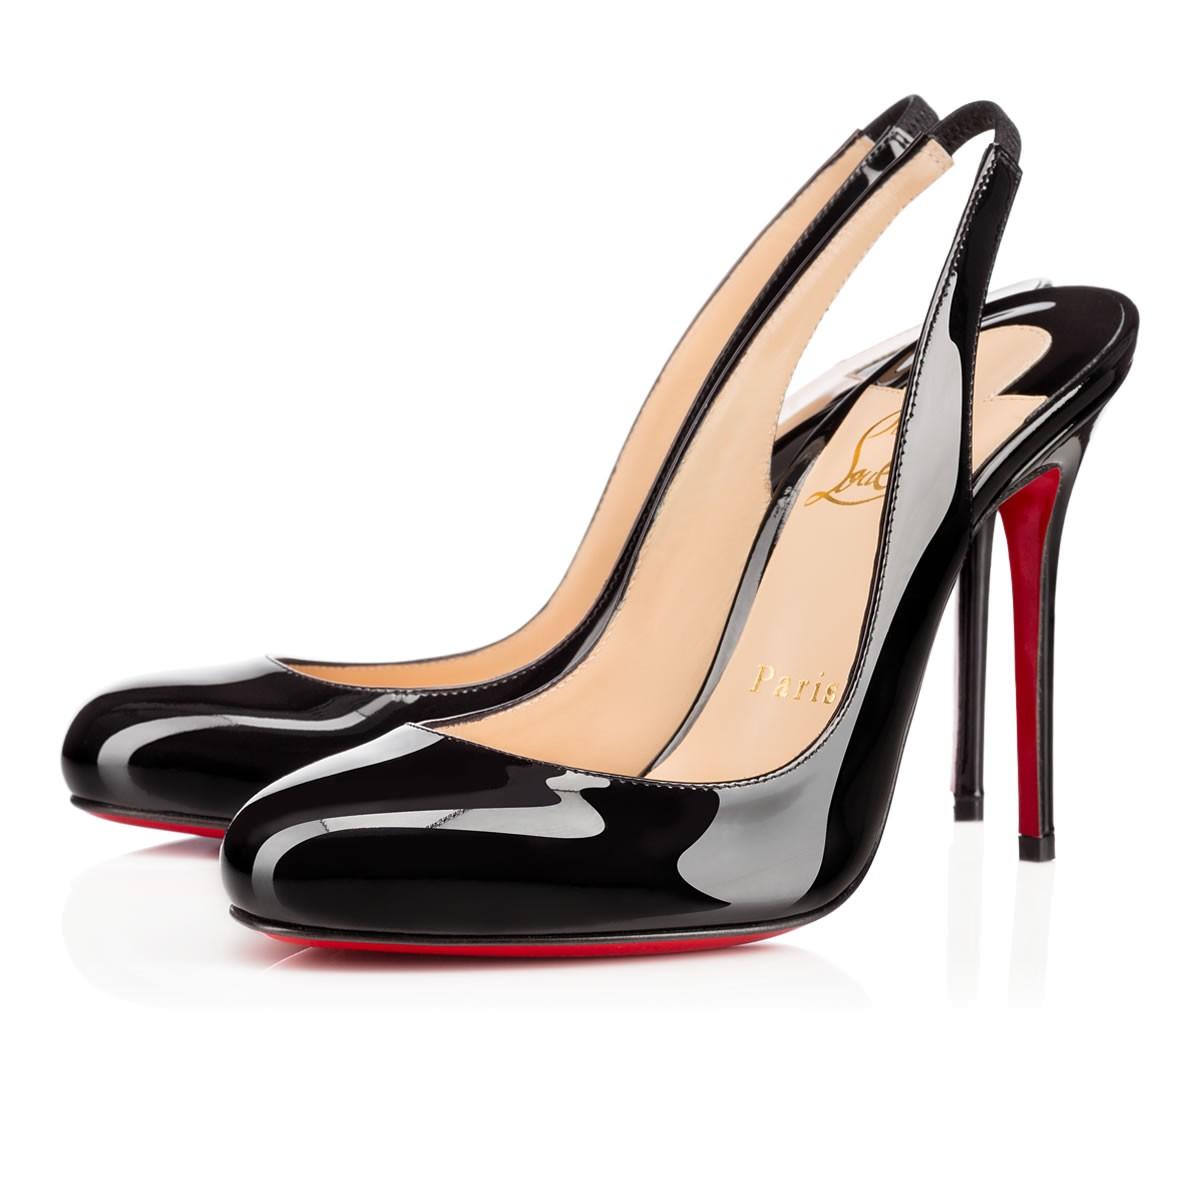 christian louboutin 100mm